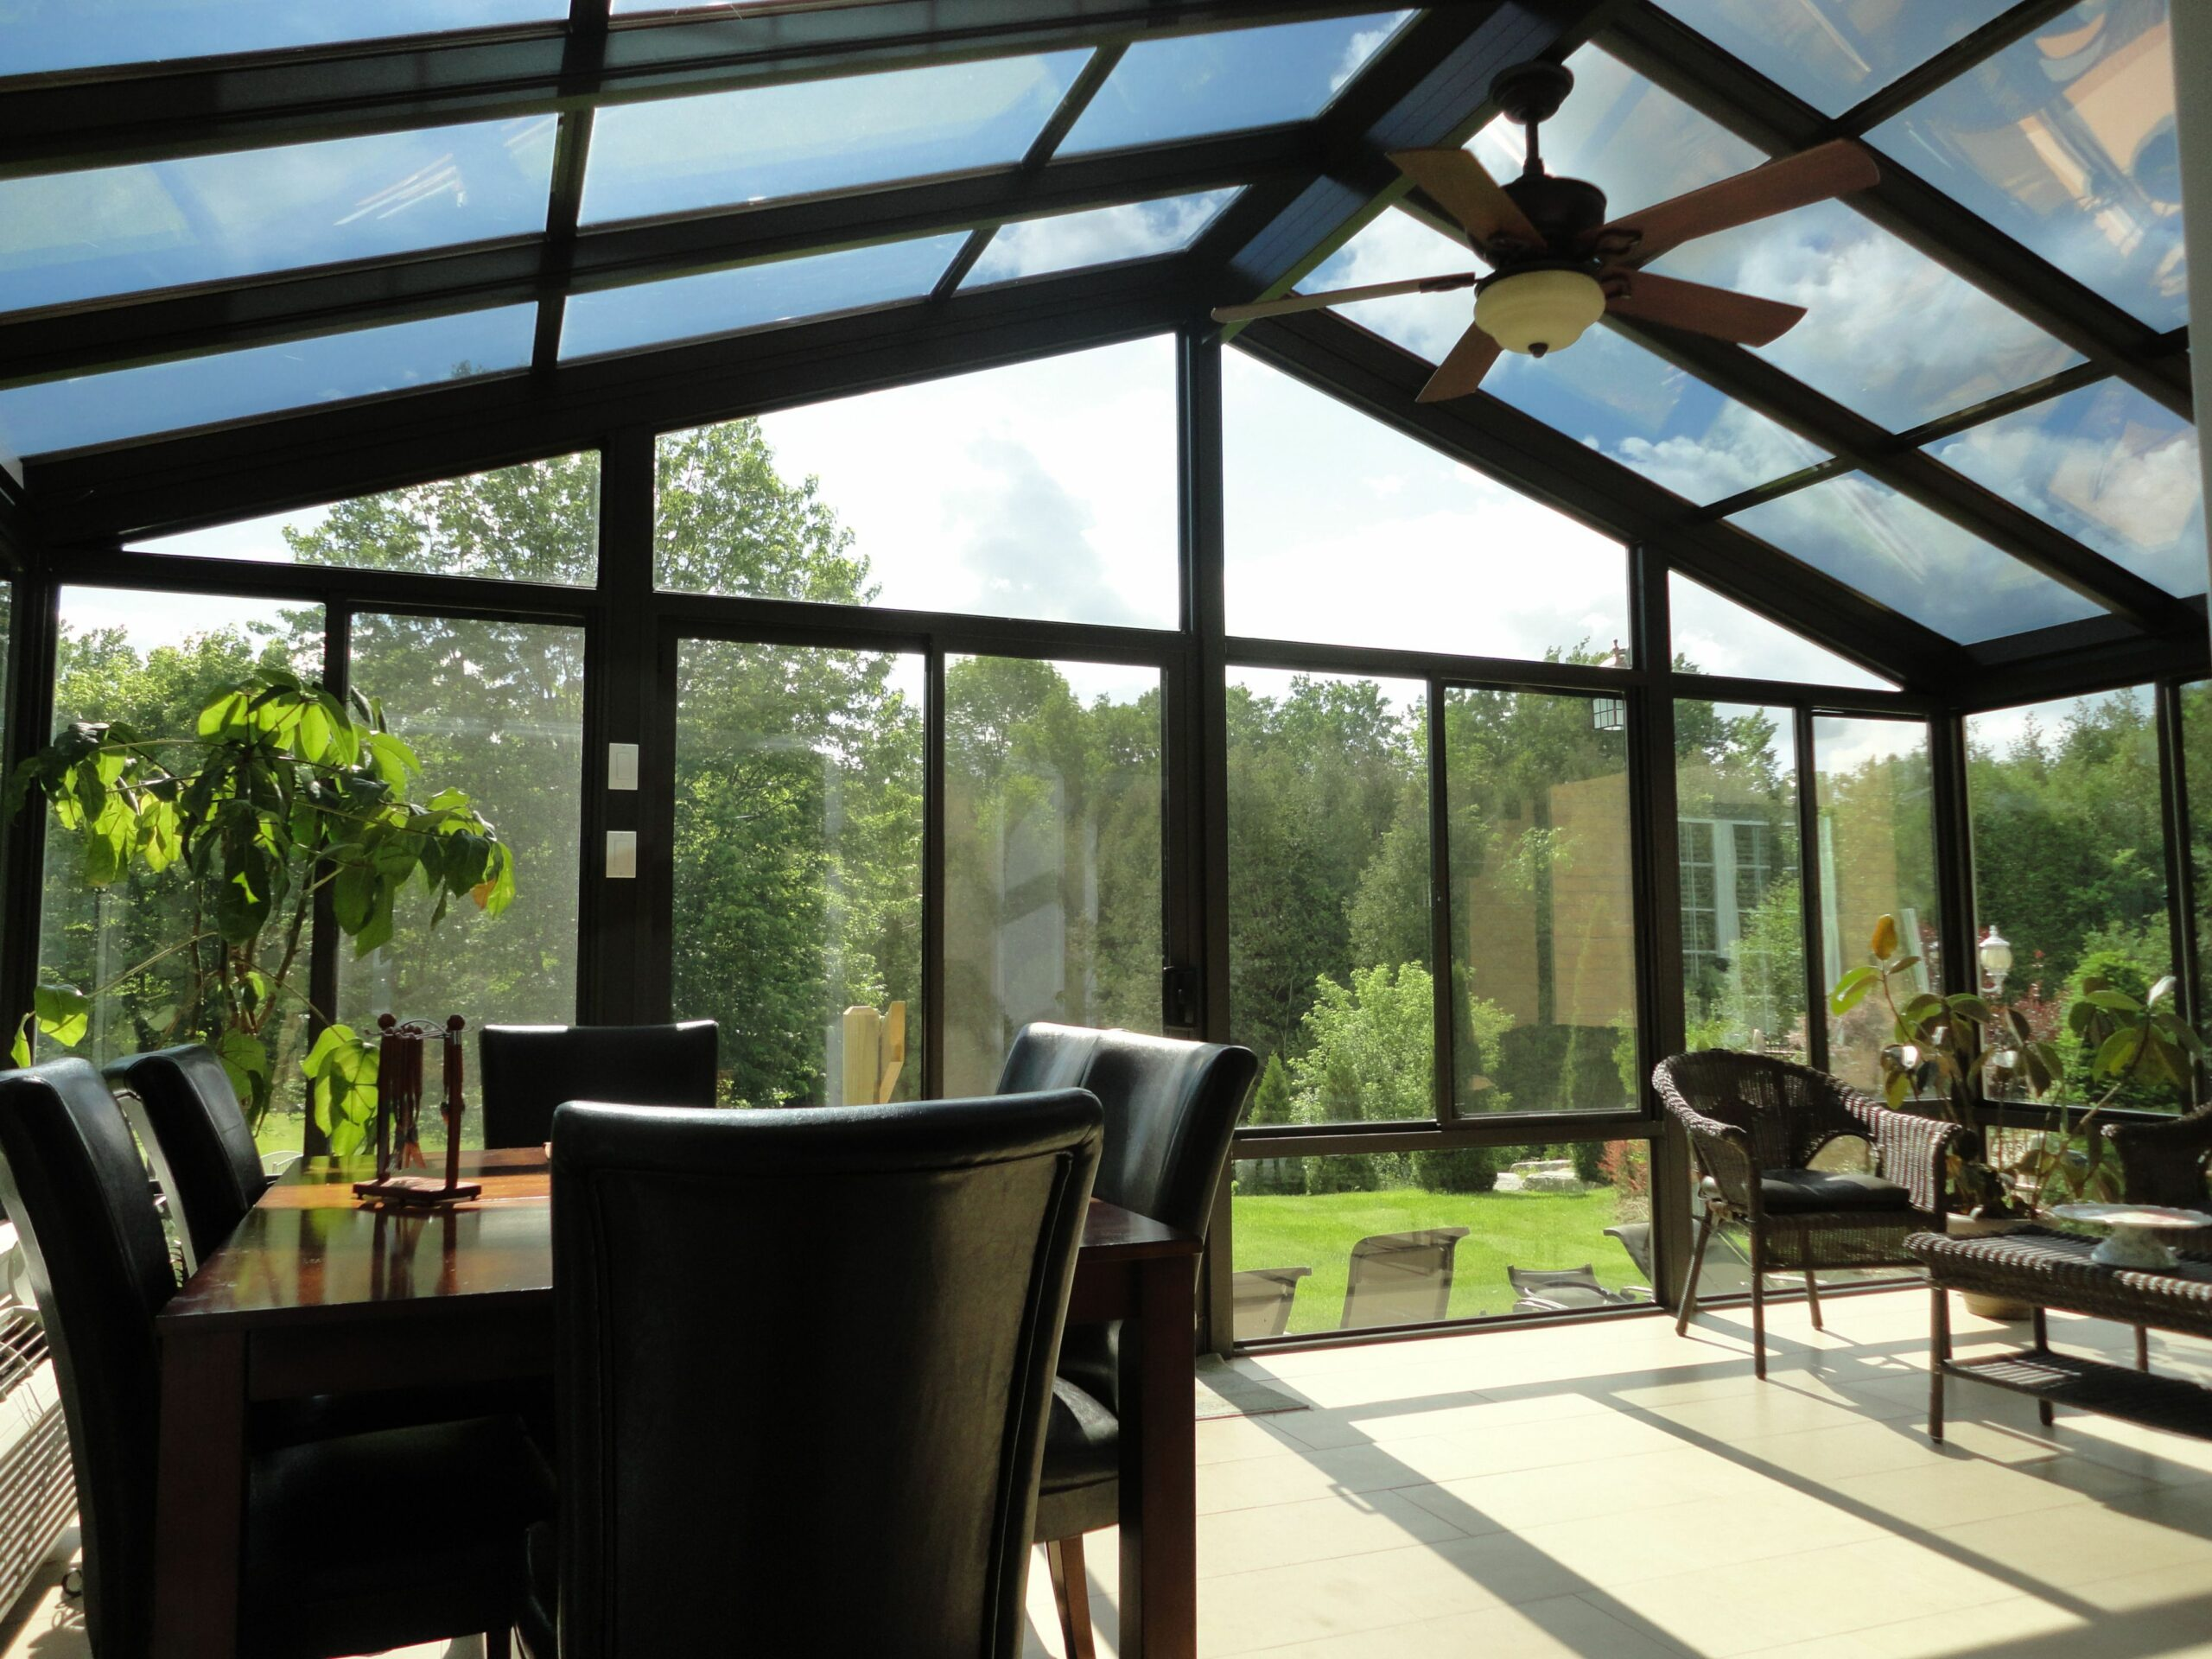 Pin by Four Seasons Sunrooms Toronto on Ideas for the House ...